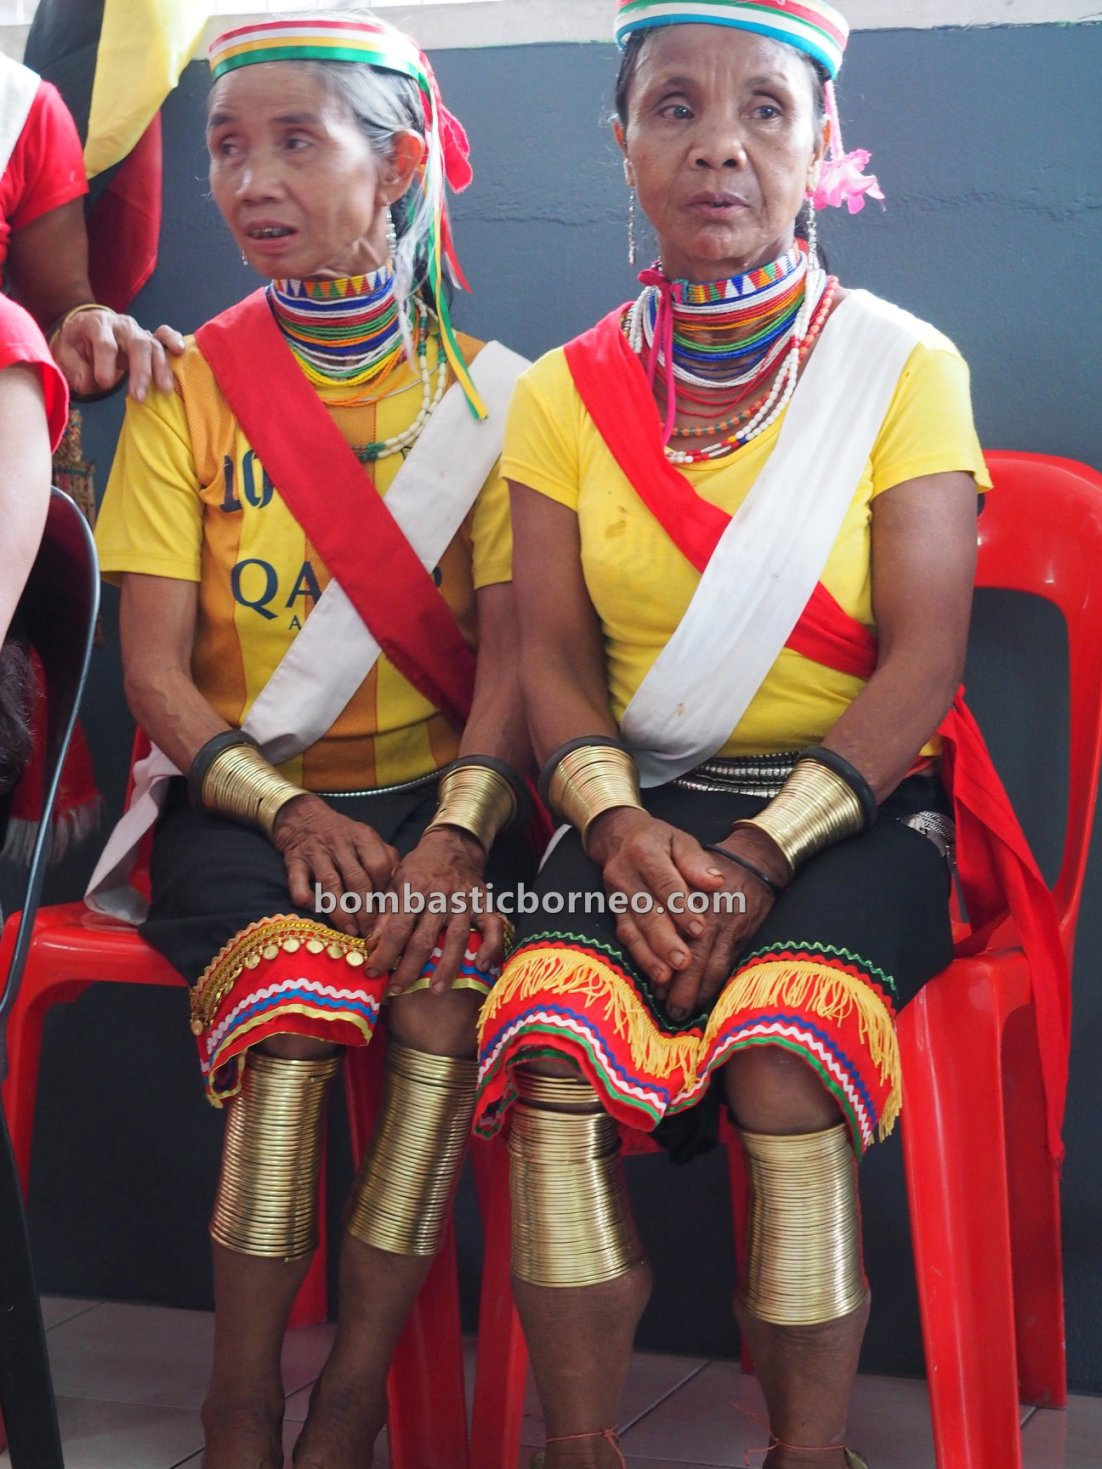 Kampung Gumbang, Gawai Serumpun, Dayak Bidayuh, thanksgiving, indigenous, Sarawak, Malaysia, culture, Ethnic, native, Tourist attraction, travel guide, trans borneo, 婆罗洲铜环女游踪, 砂拉越达雅丰收节日, Sungkung Medeng,